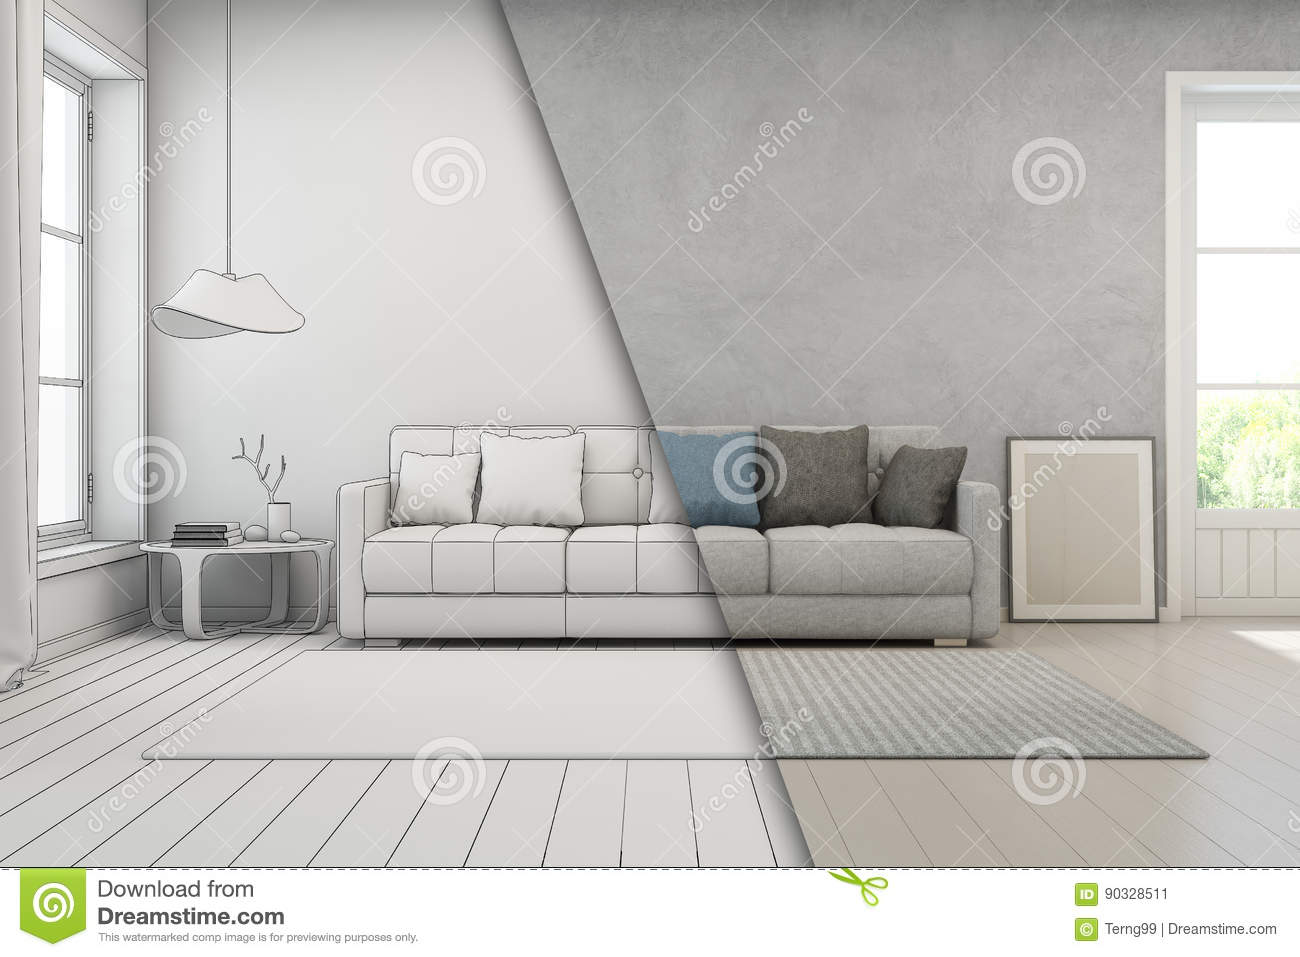 Modern House Sketch Stock Photos - Download 4,730 Images